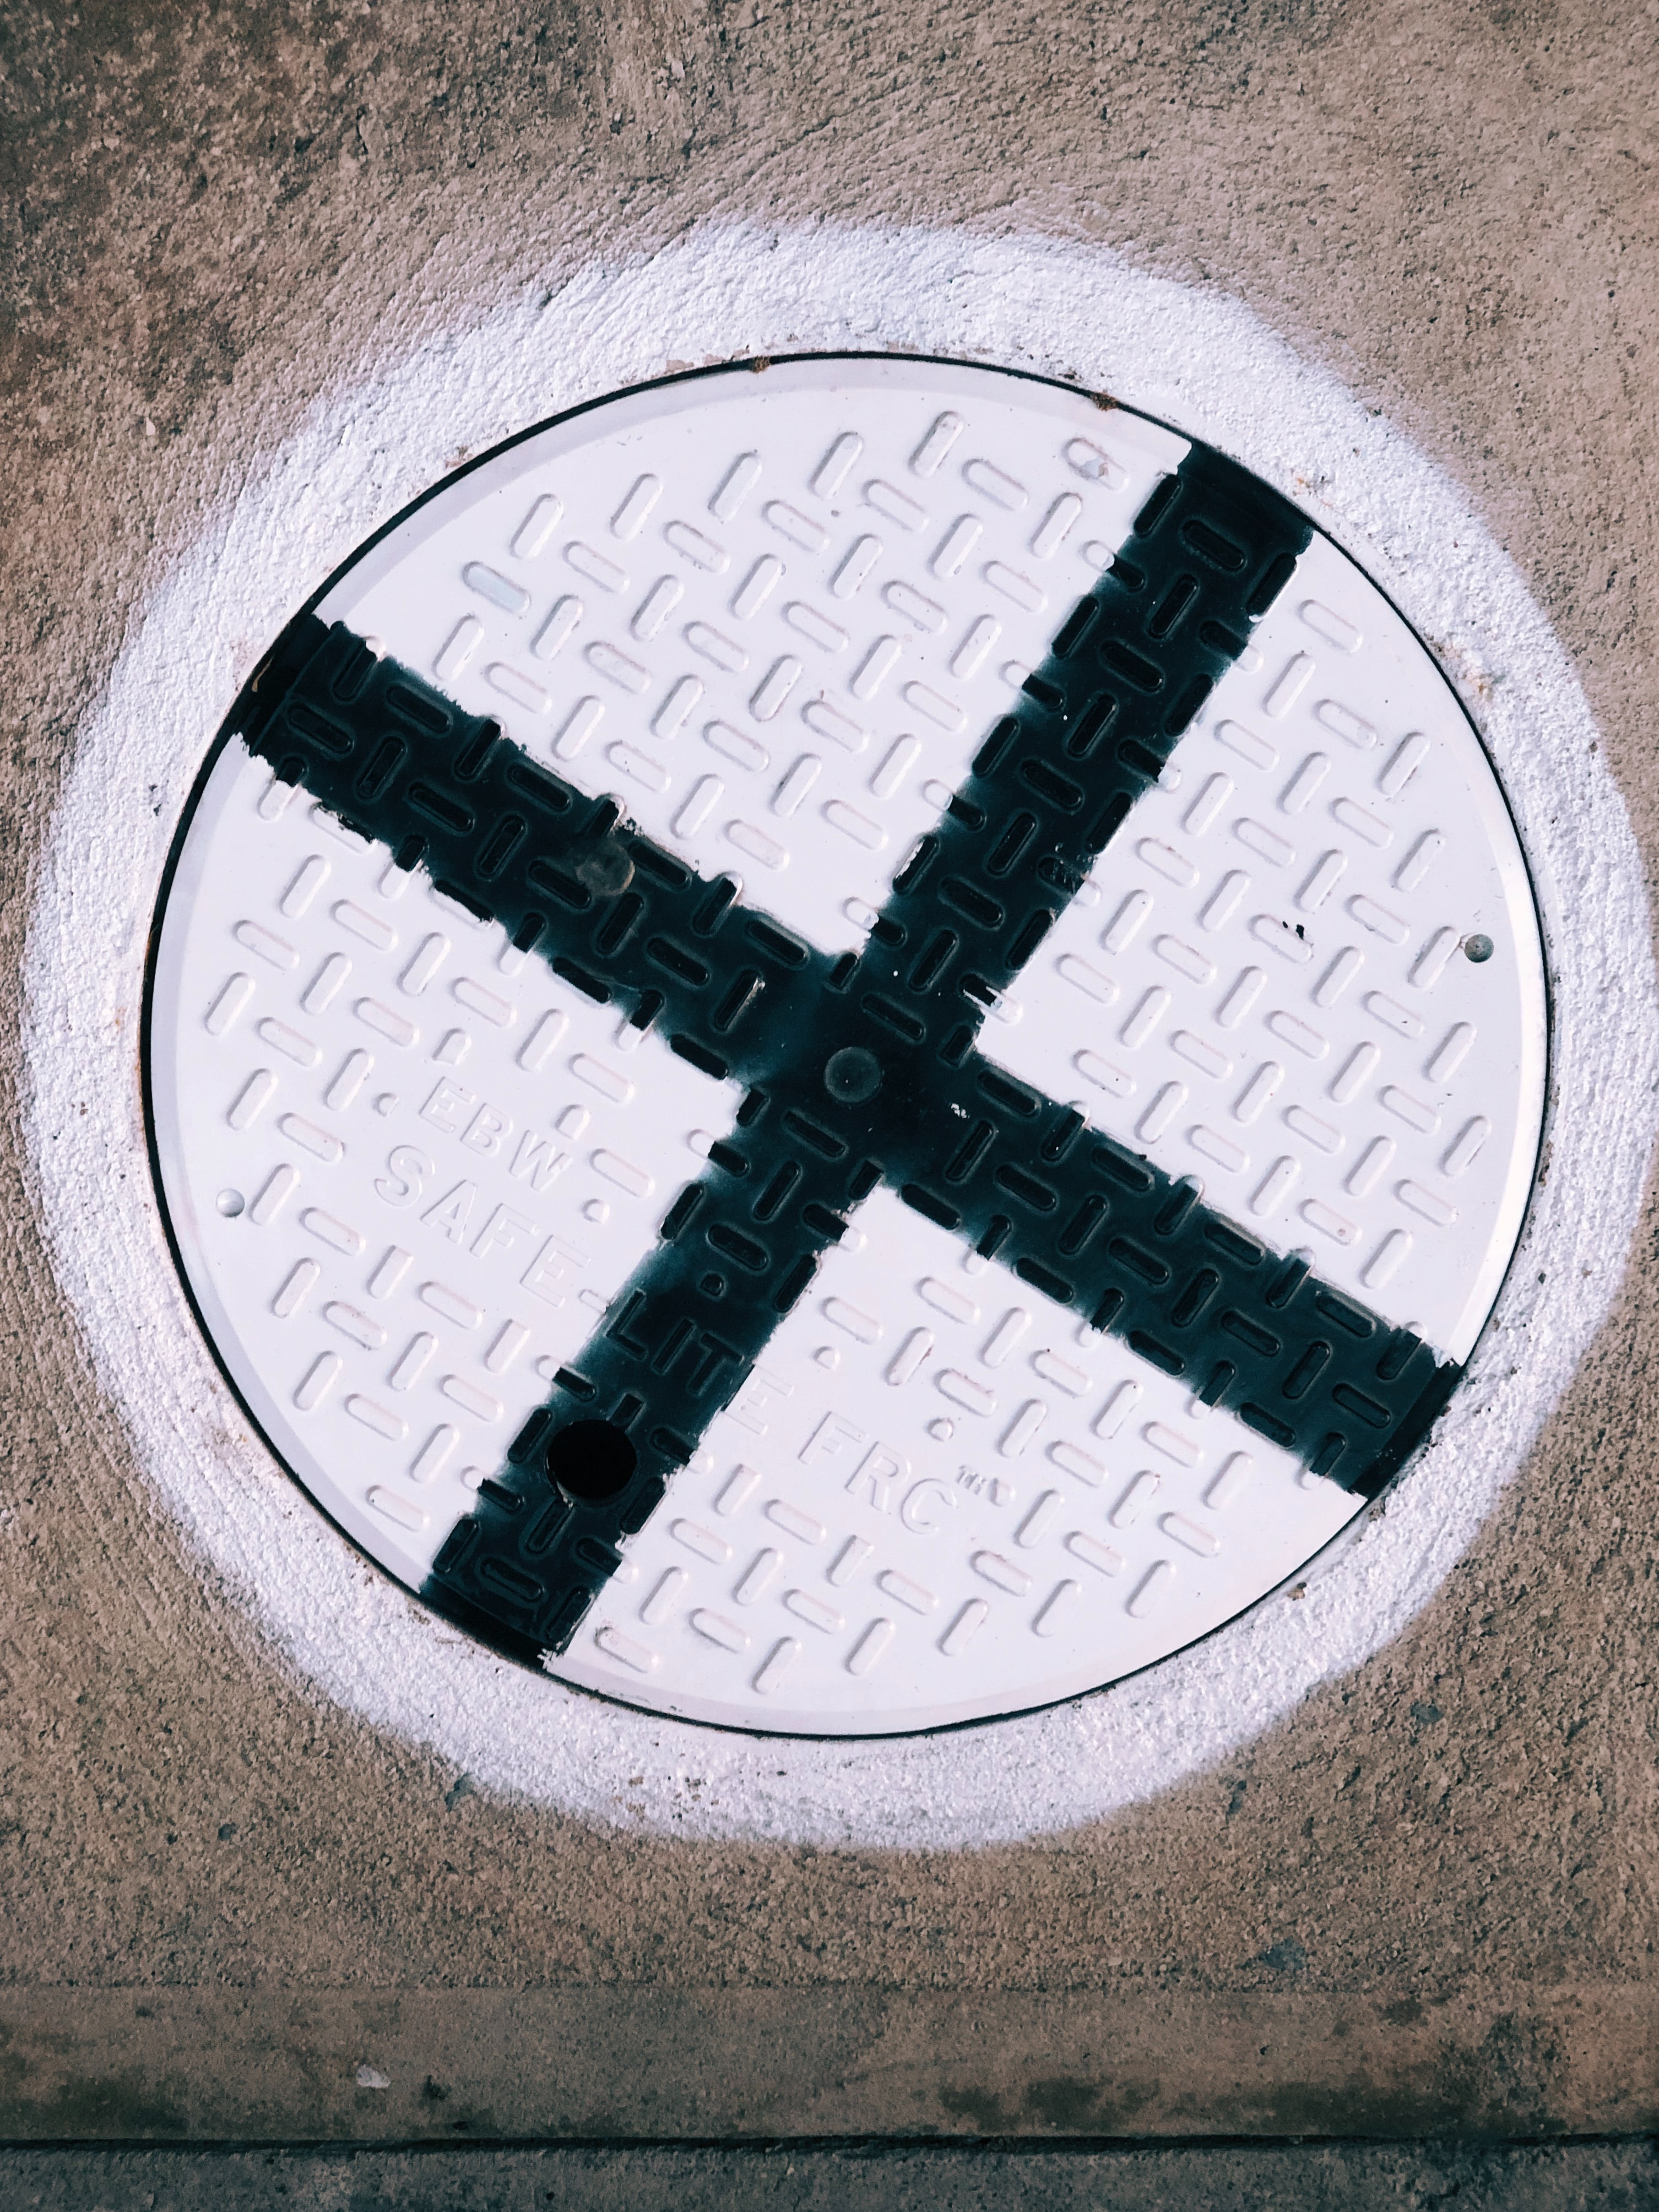 White circle with x painted in black